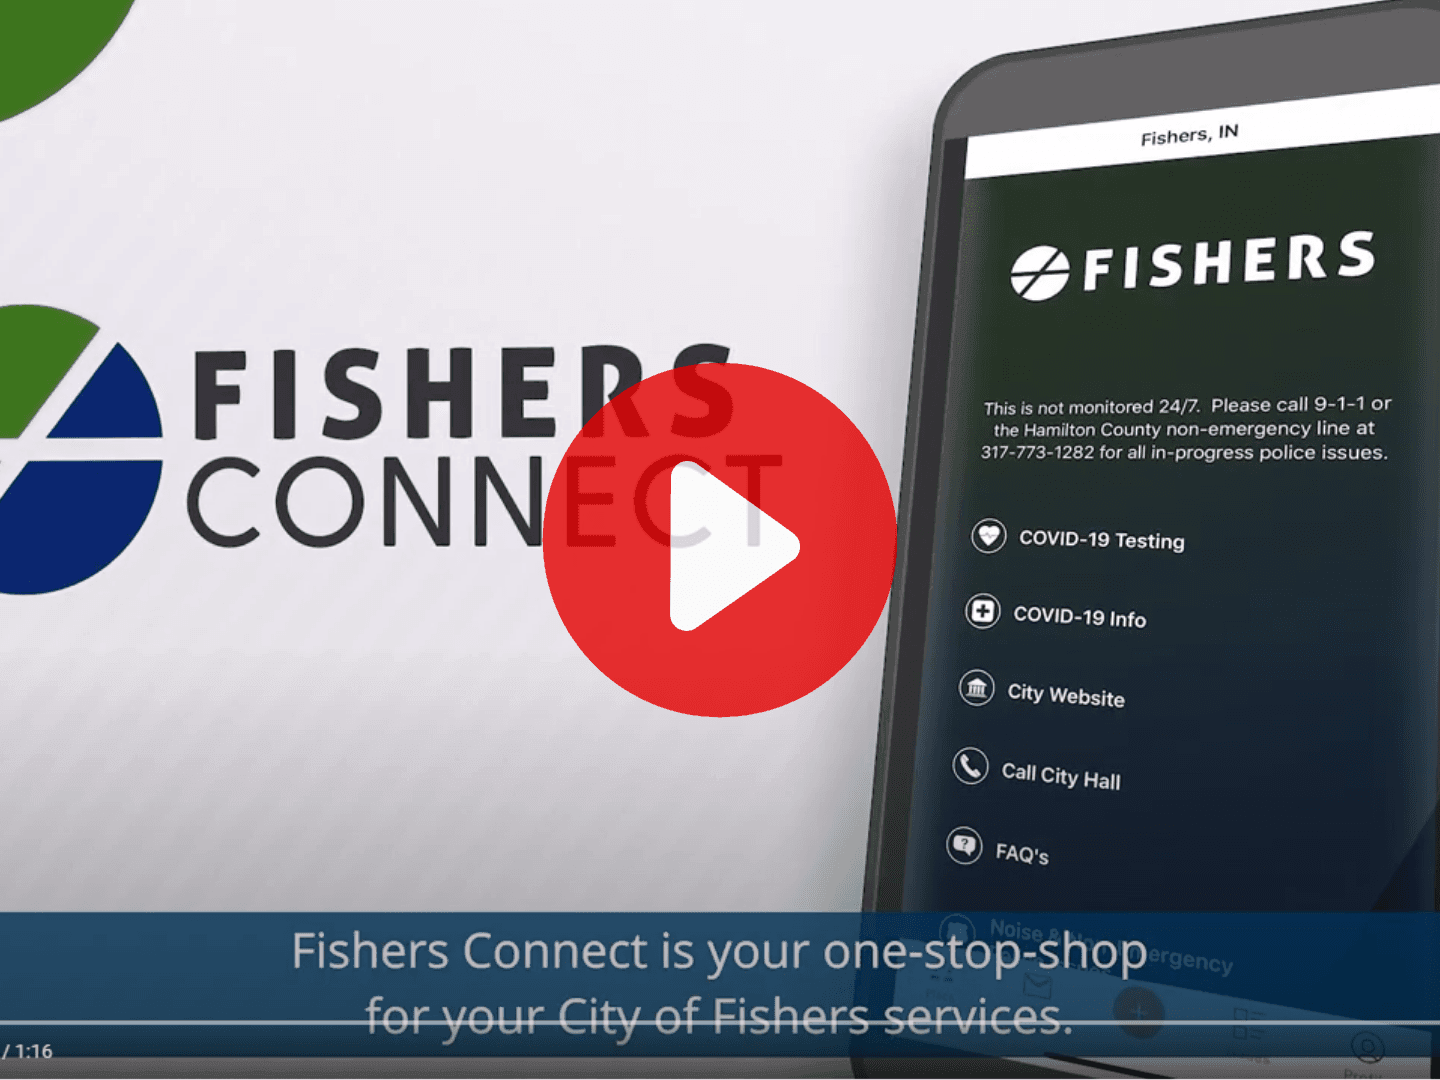 fishers connect video